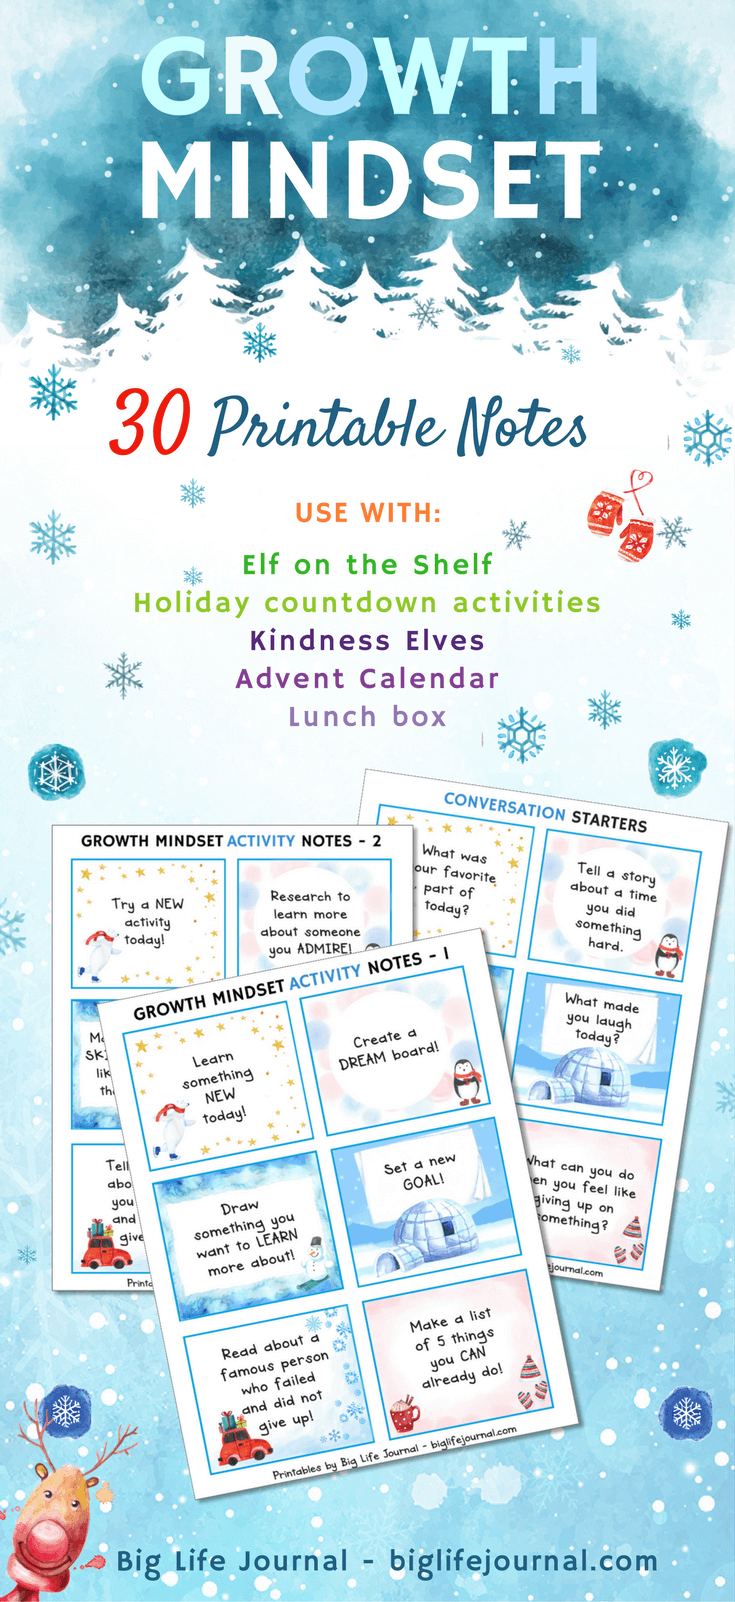 Growth mindset holiday-themed printables notes for children.